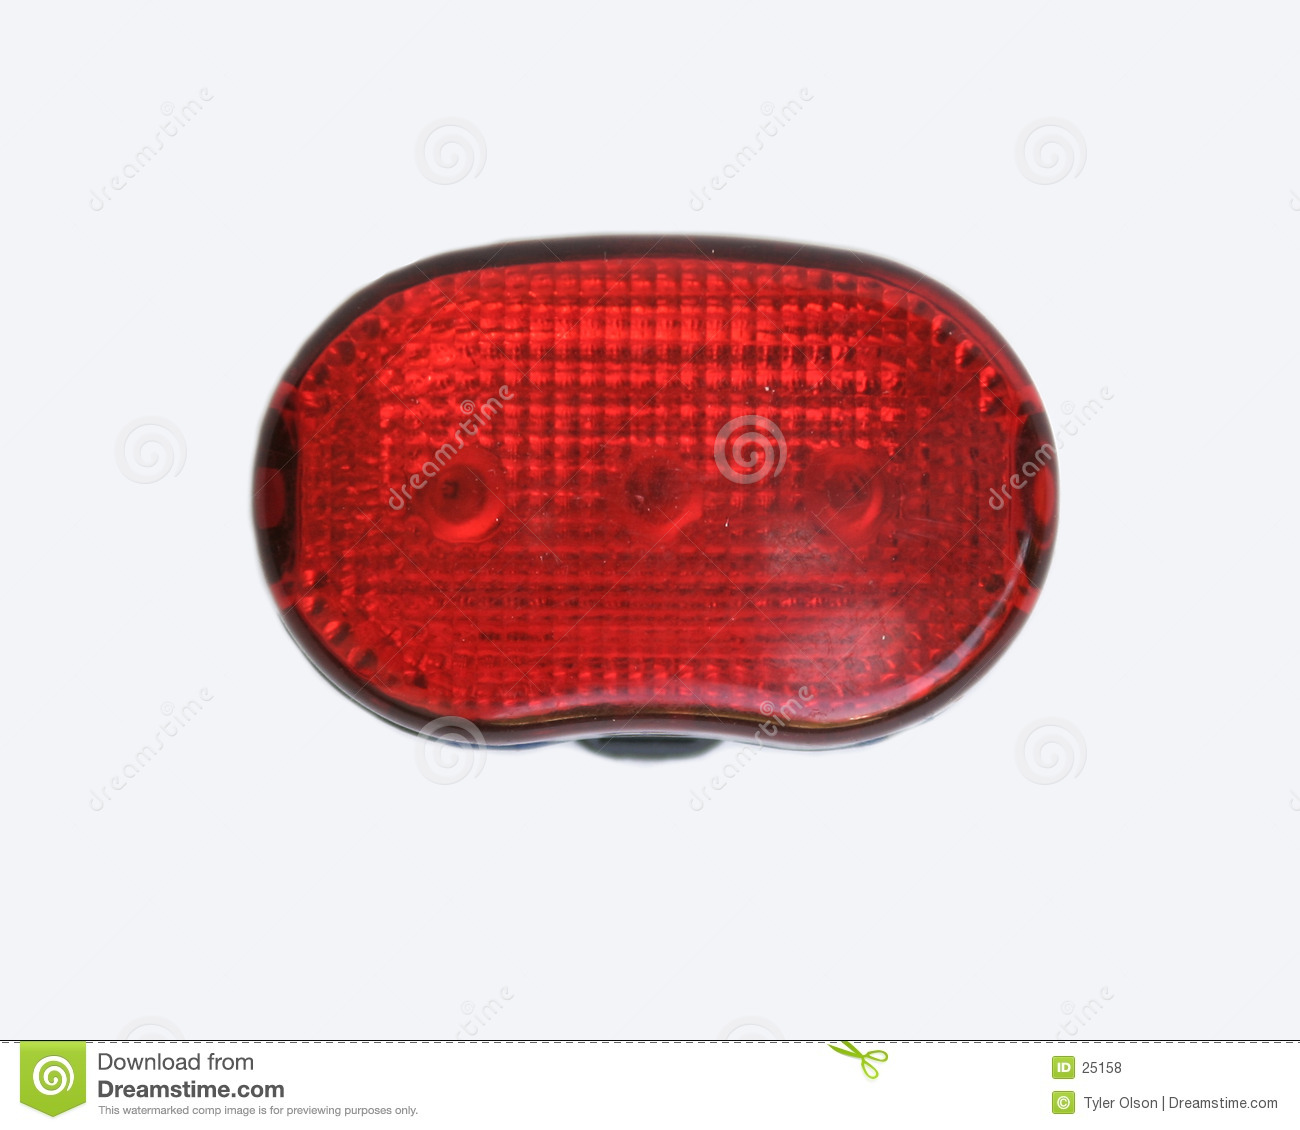 Rear Bike Lamp Isolated on White